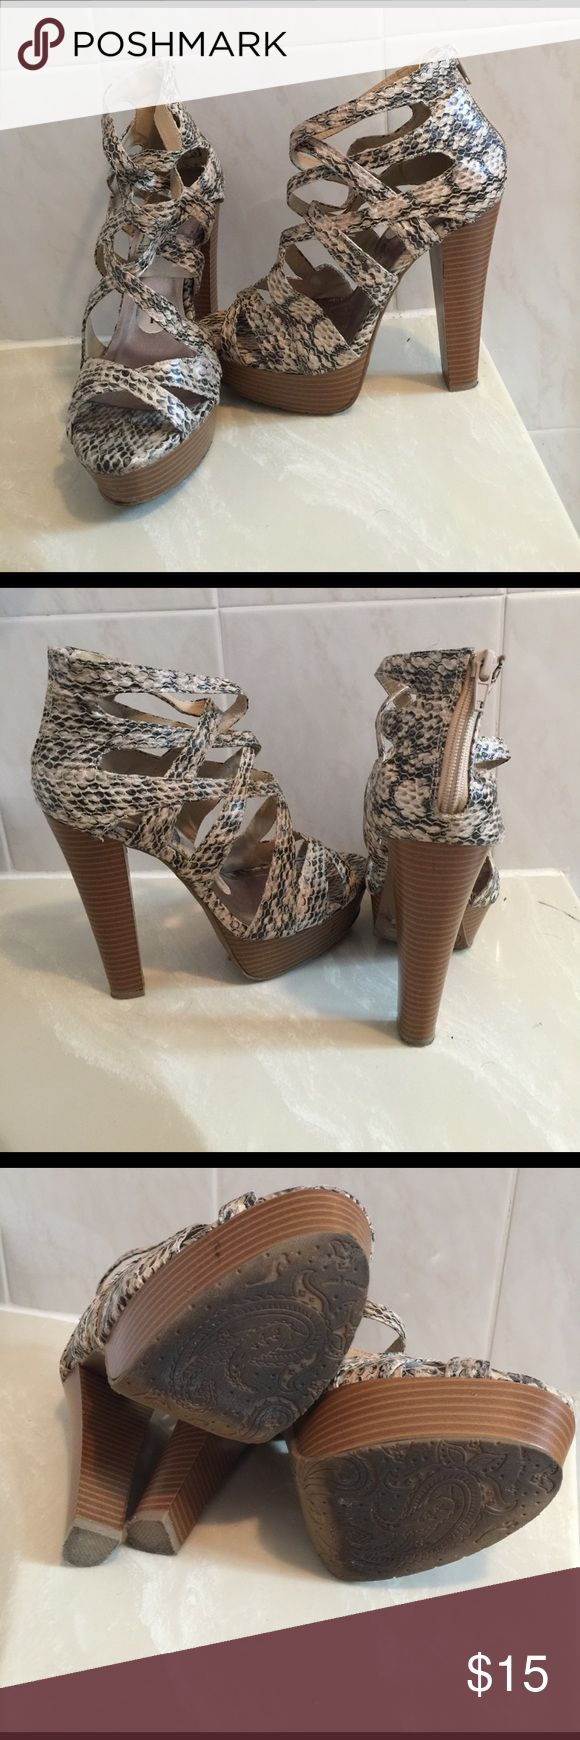 Animal print high heels Heel about 5 1/2 inches high. Front about 1 1/2 inches high. Zipper in the back. Ask questions. No trades Dollhouse Shoes Heels